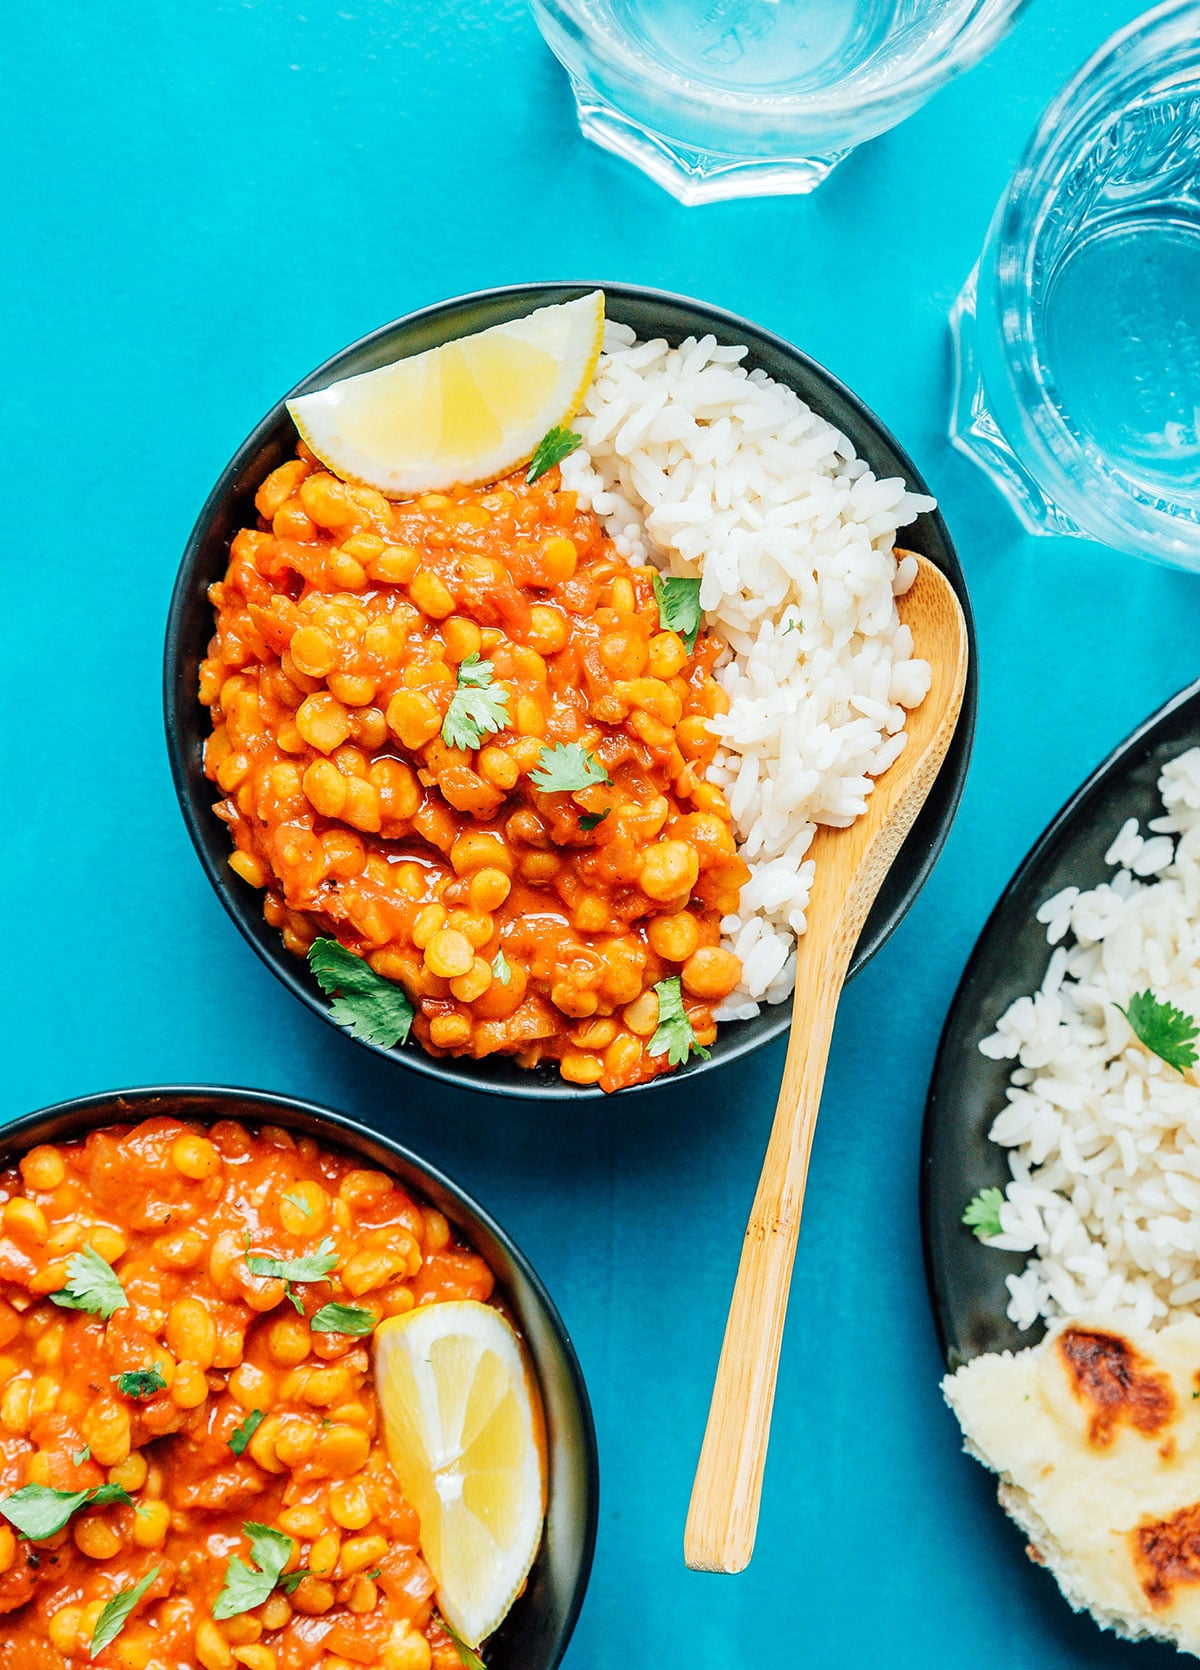 Three bowls of chana dal and rice on a blue background